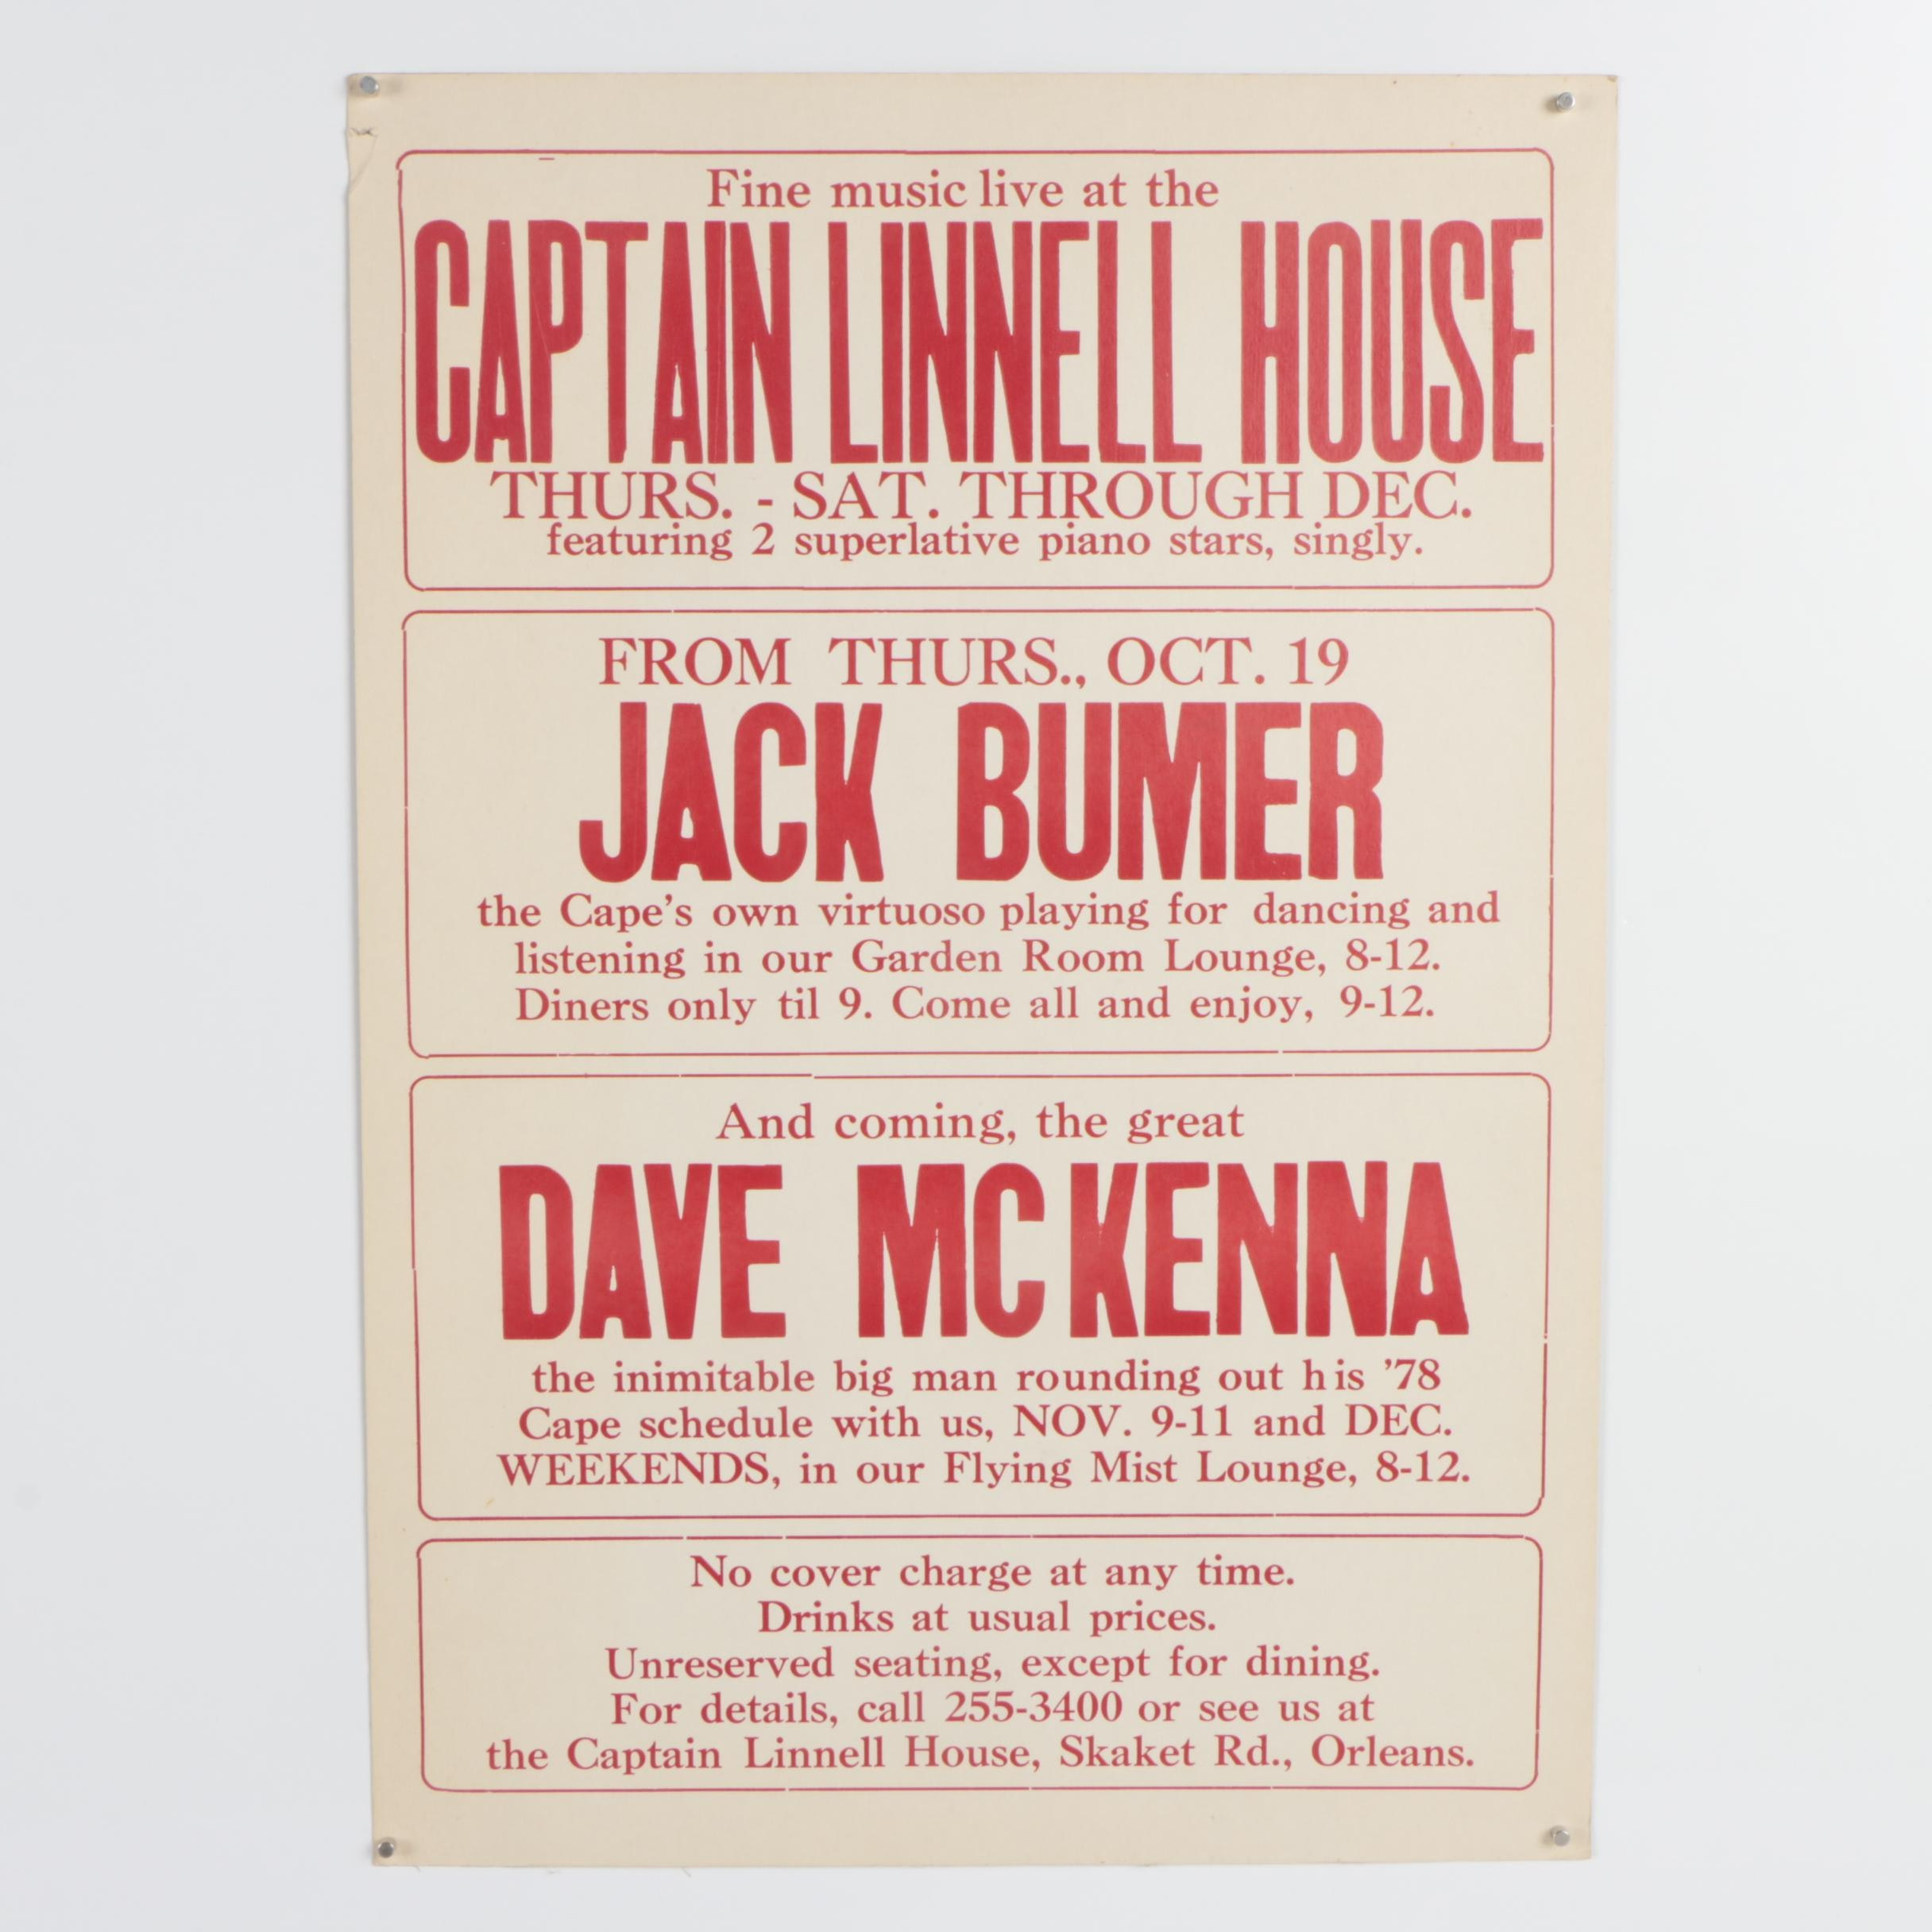 Advertisement Poster for the Captain Linnell House